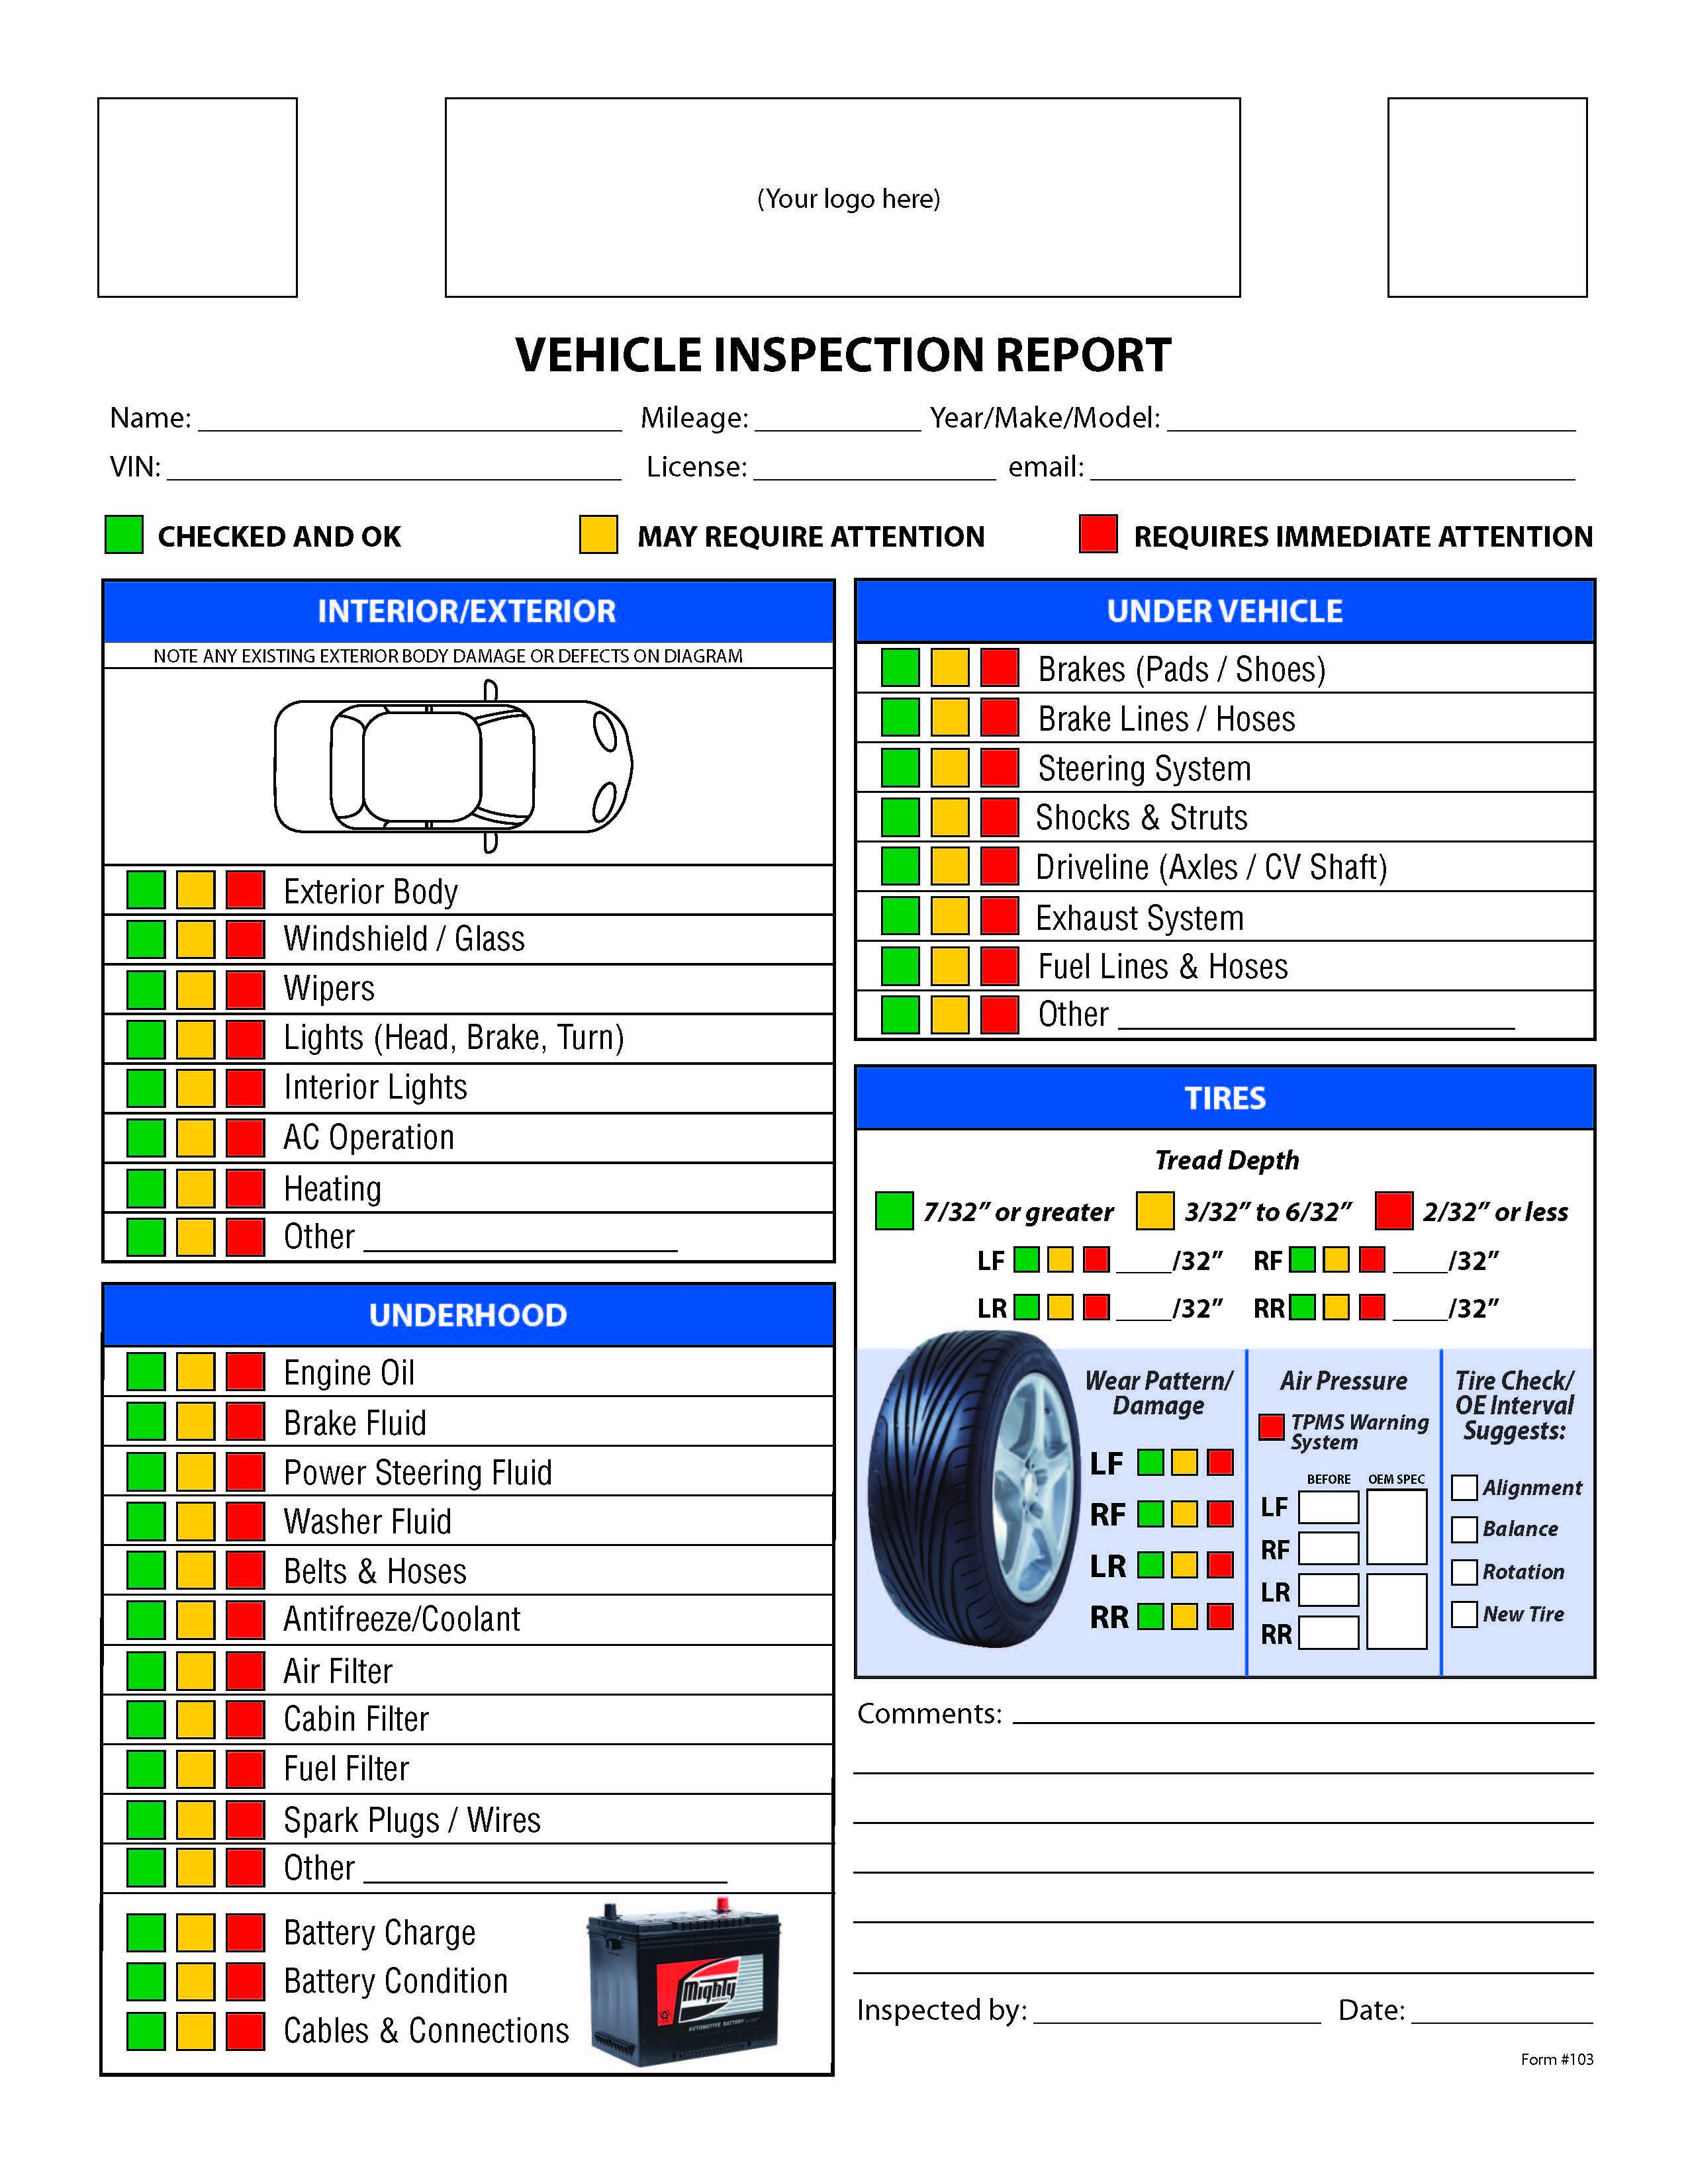 Inspection Log Sheet Free Vehicle Inspection Checklist form